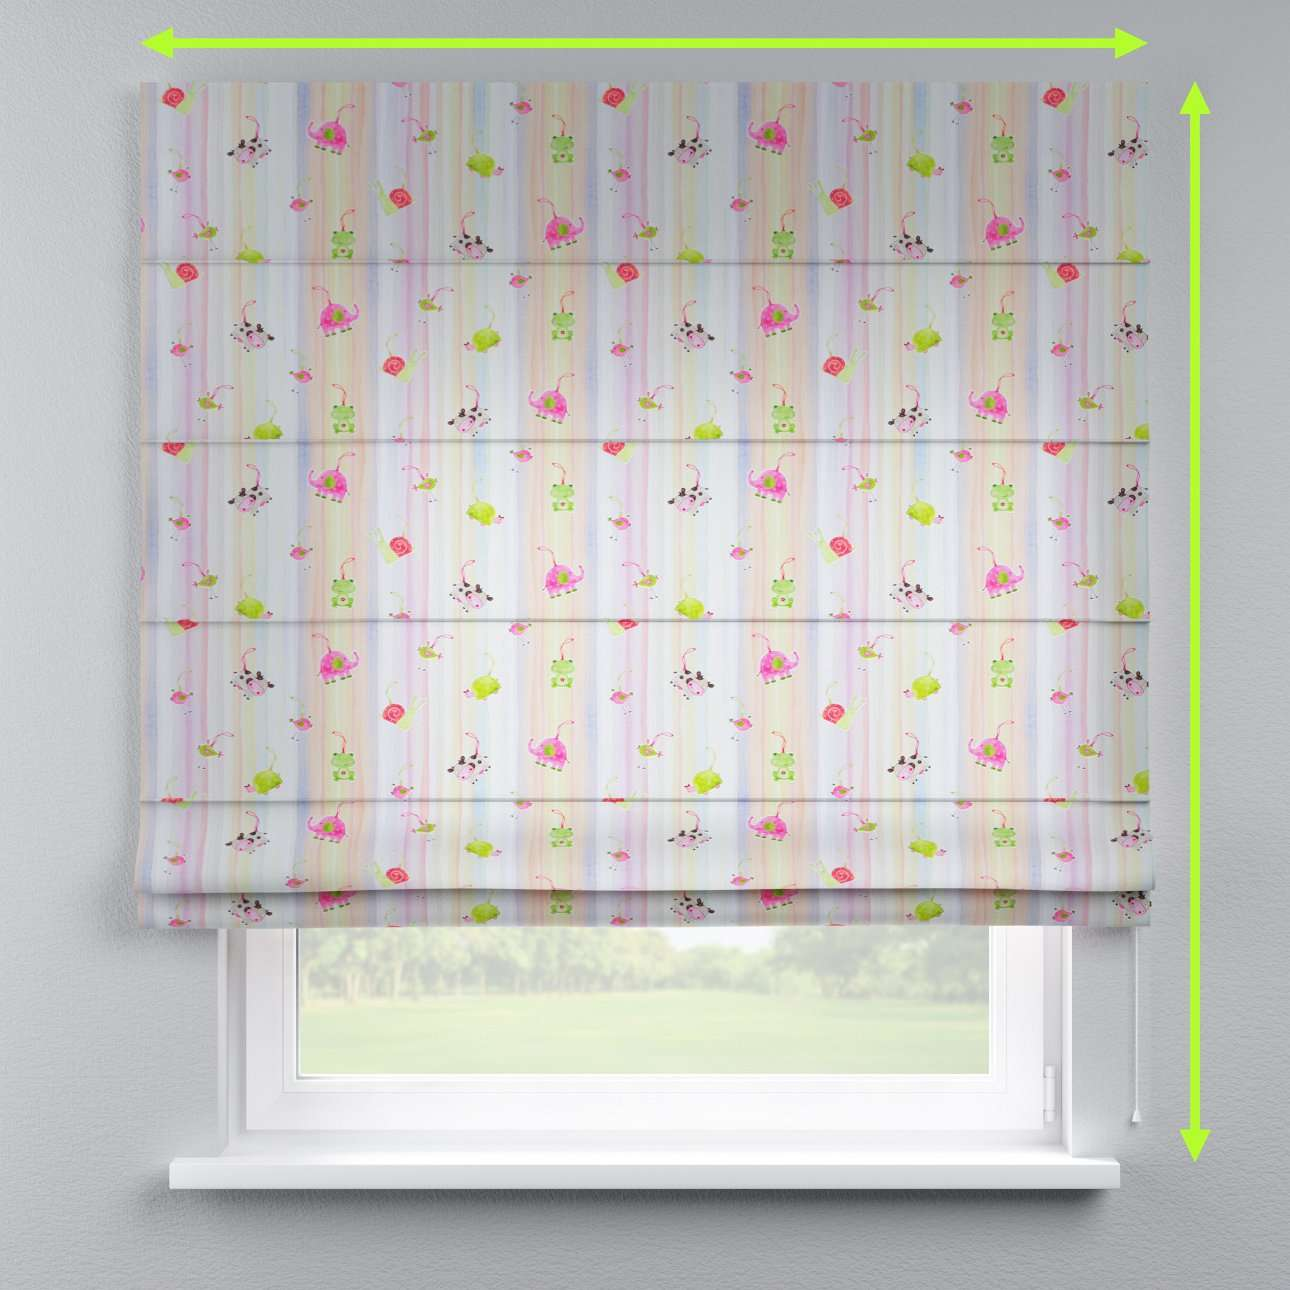 Lined roman blind in collection Apanona, fabric: 151-05